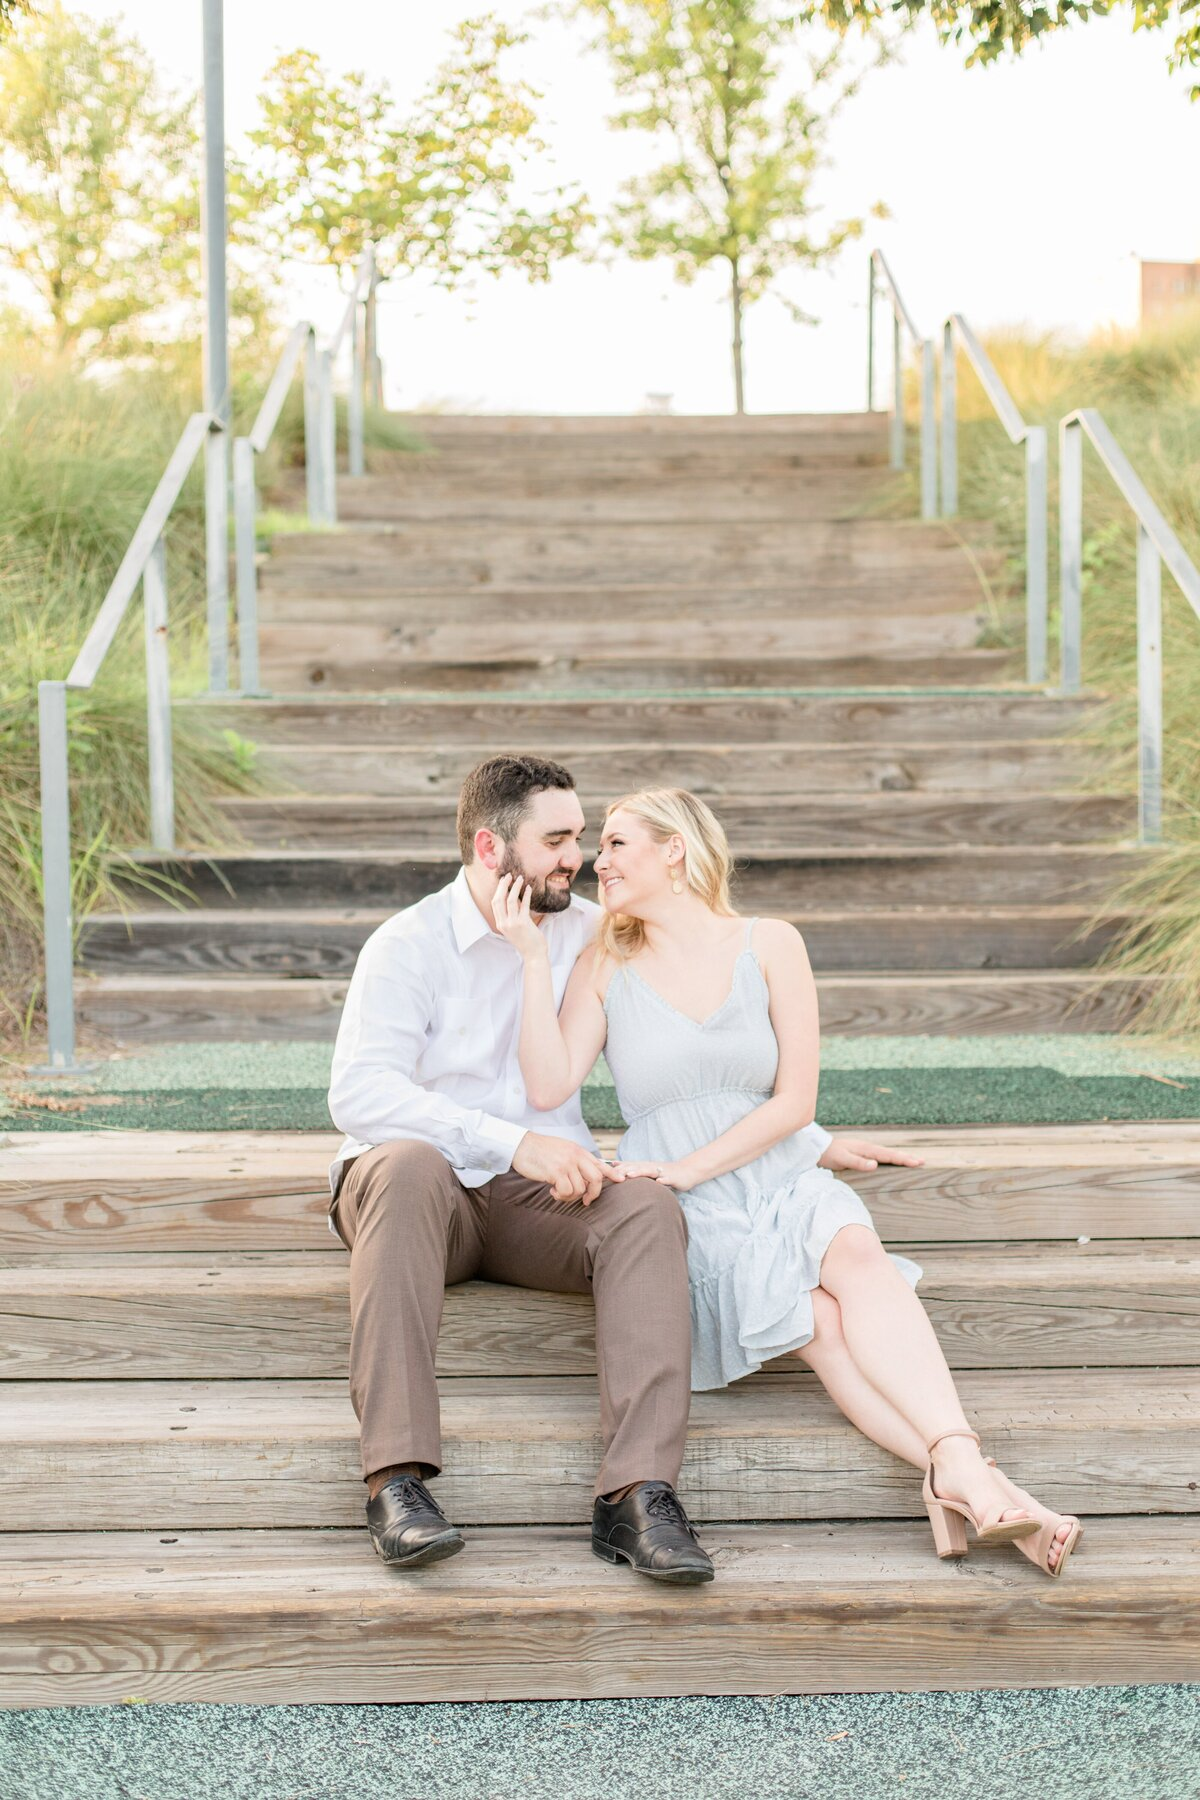 Birmingham, Alabama Wedding Photographers - Katie & Alec Photography Engagement Galleries 69